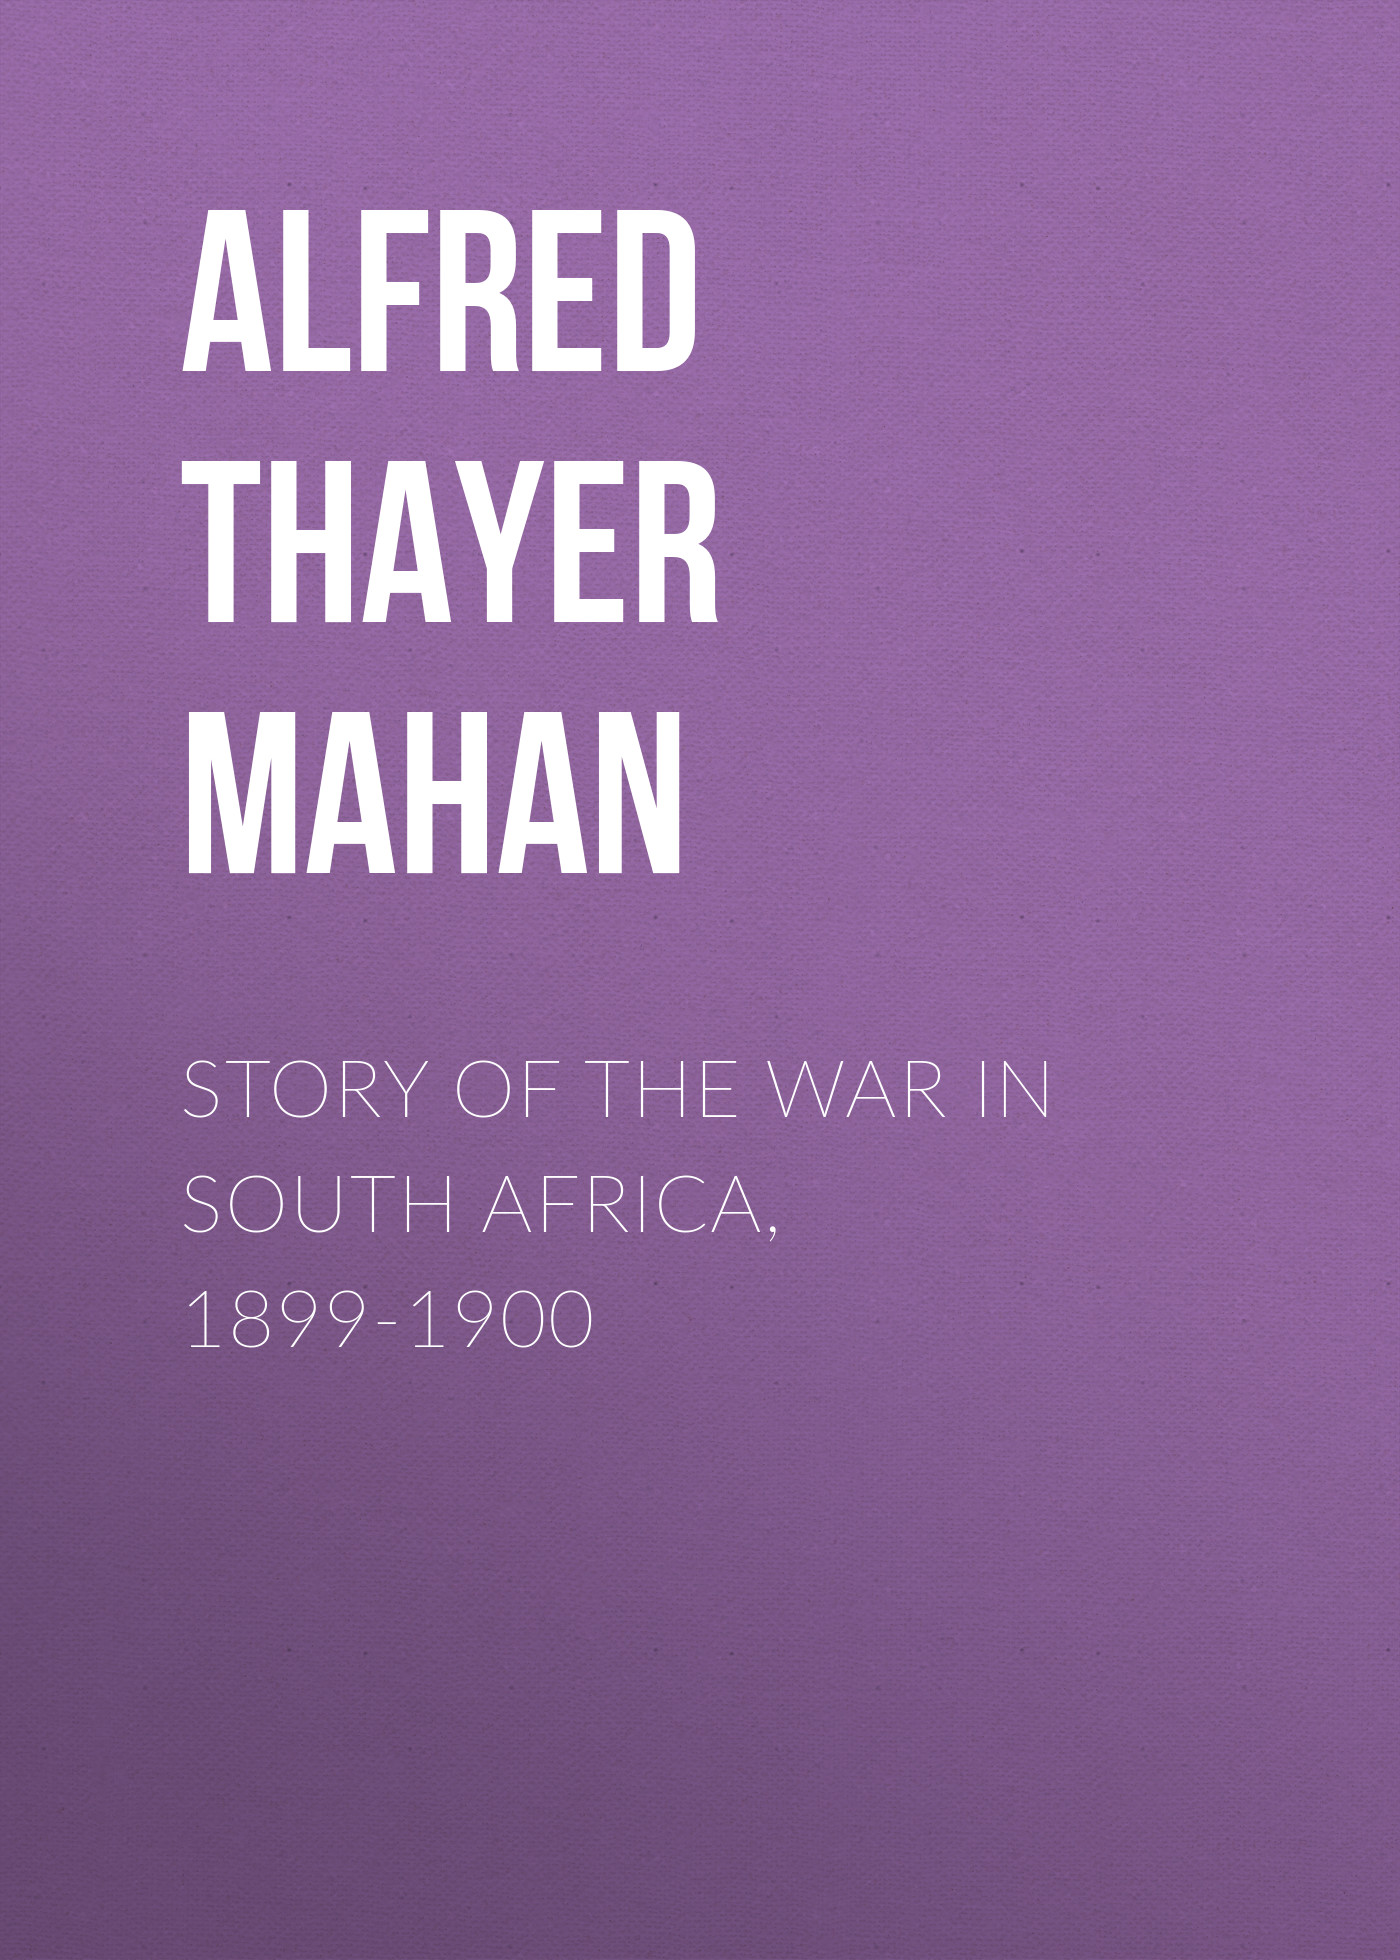 Alfred Thayer Mahan Story of the War in South Africa, 1899-1900